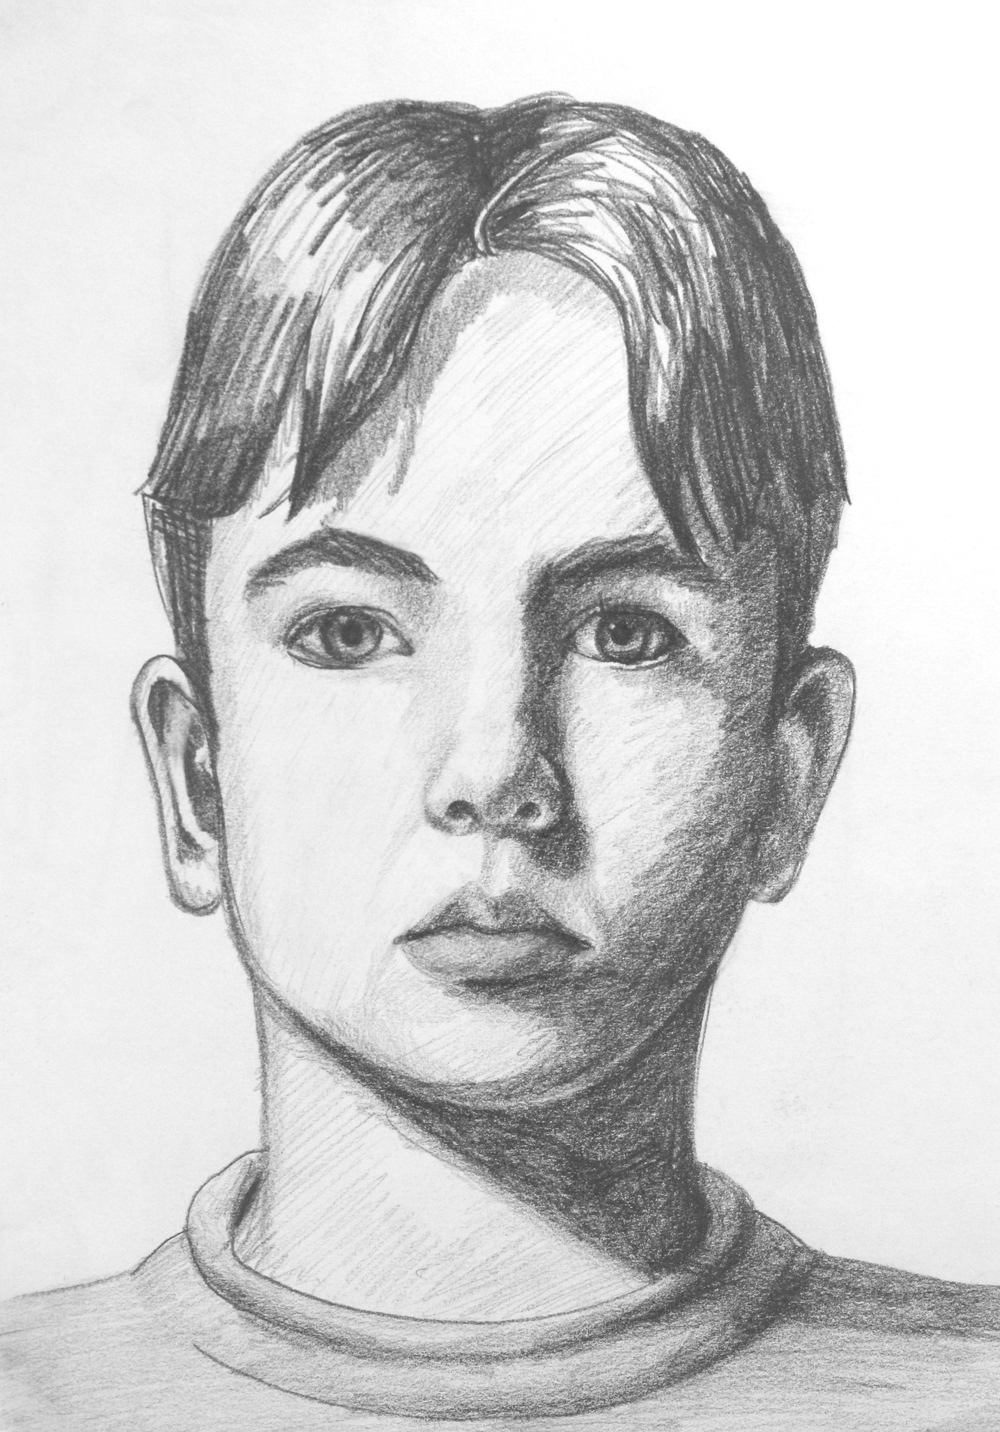 Self portrait, aged 11.